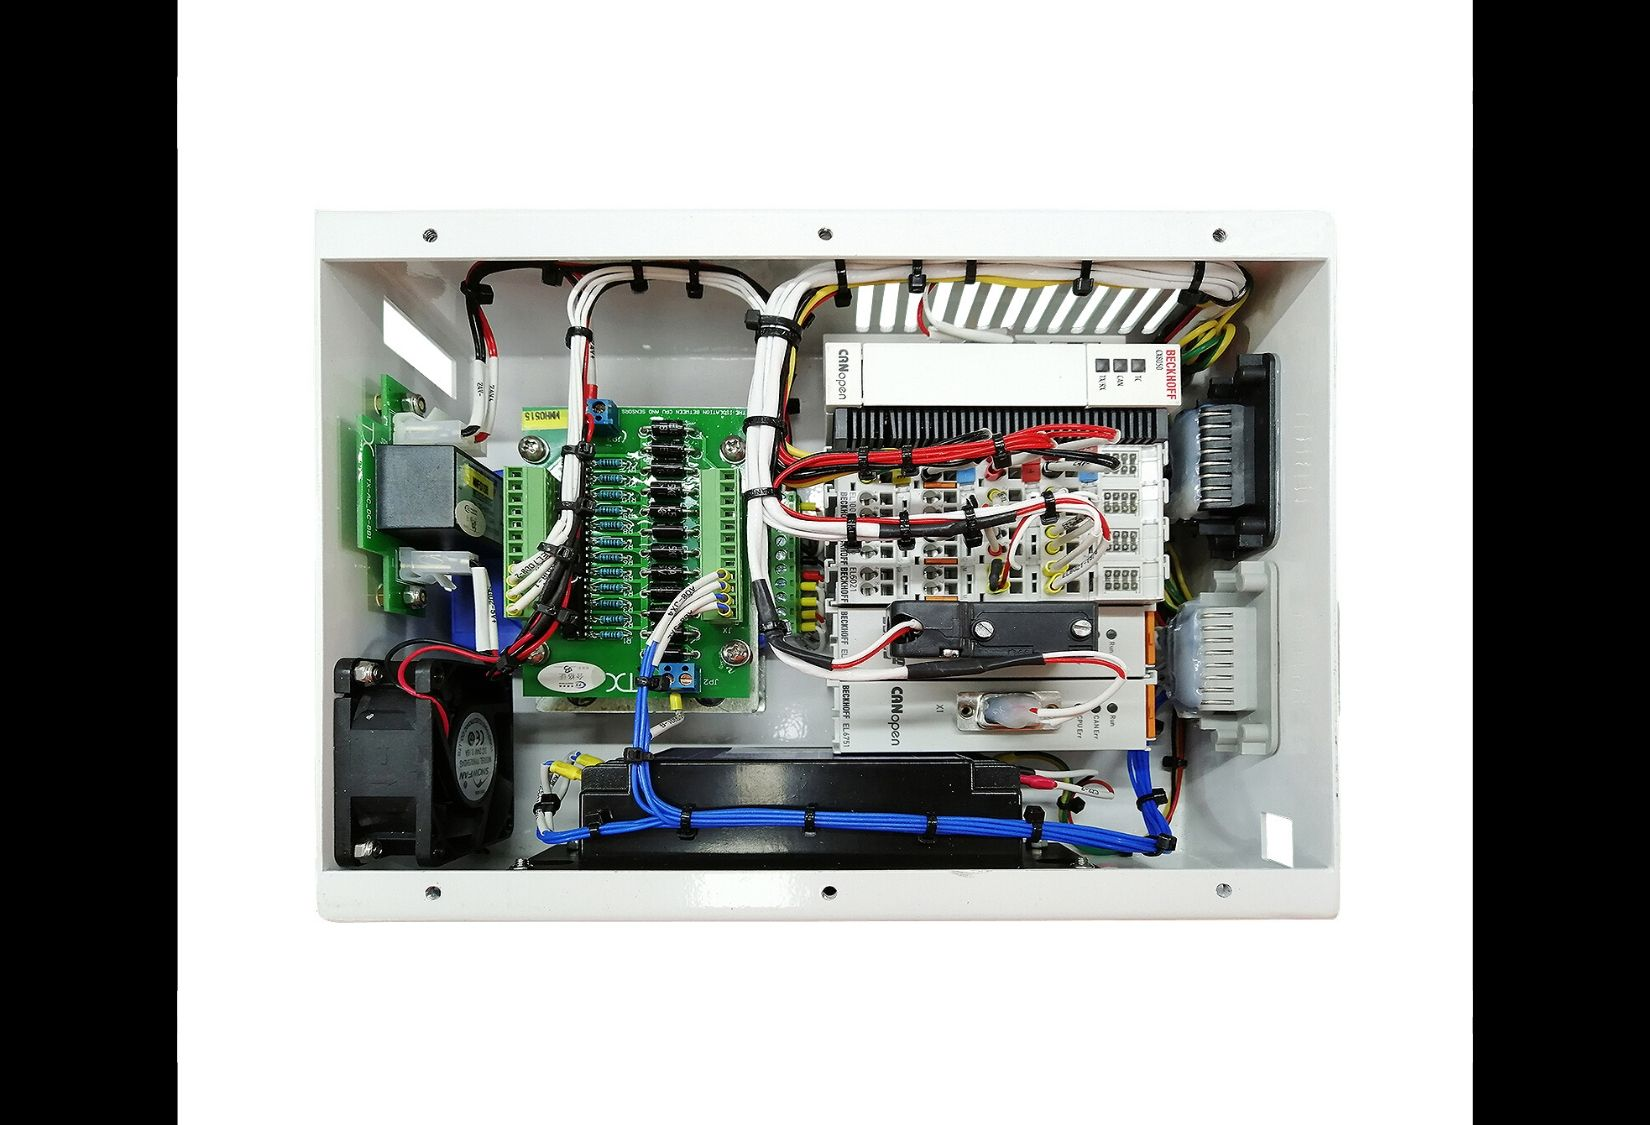 Master controller box build used in 1140V intelligent variable frequency all-in-one machine for mining.